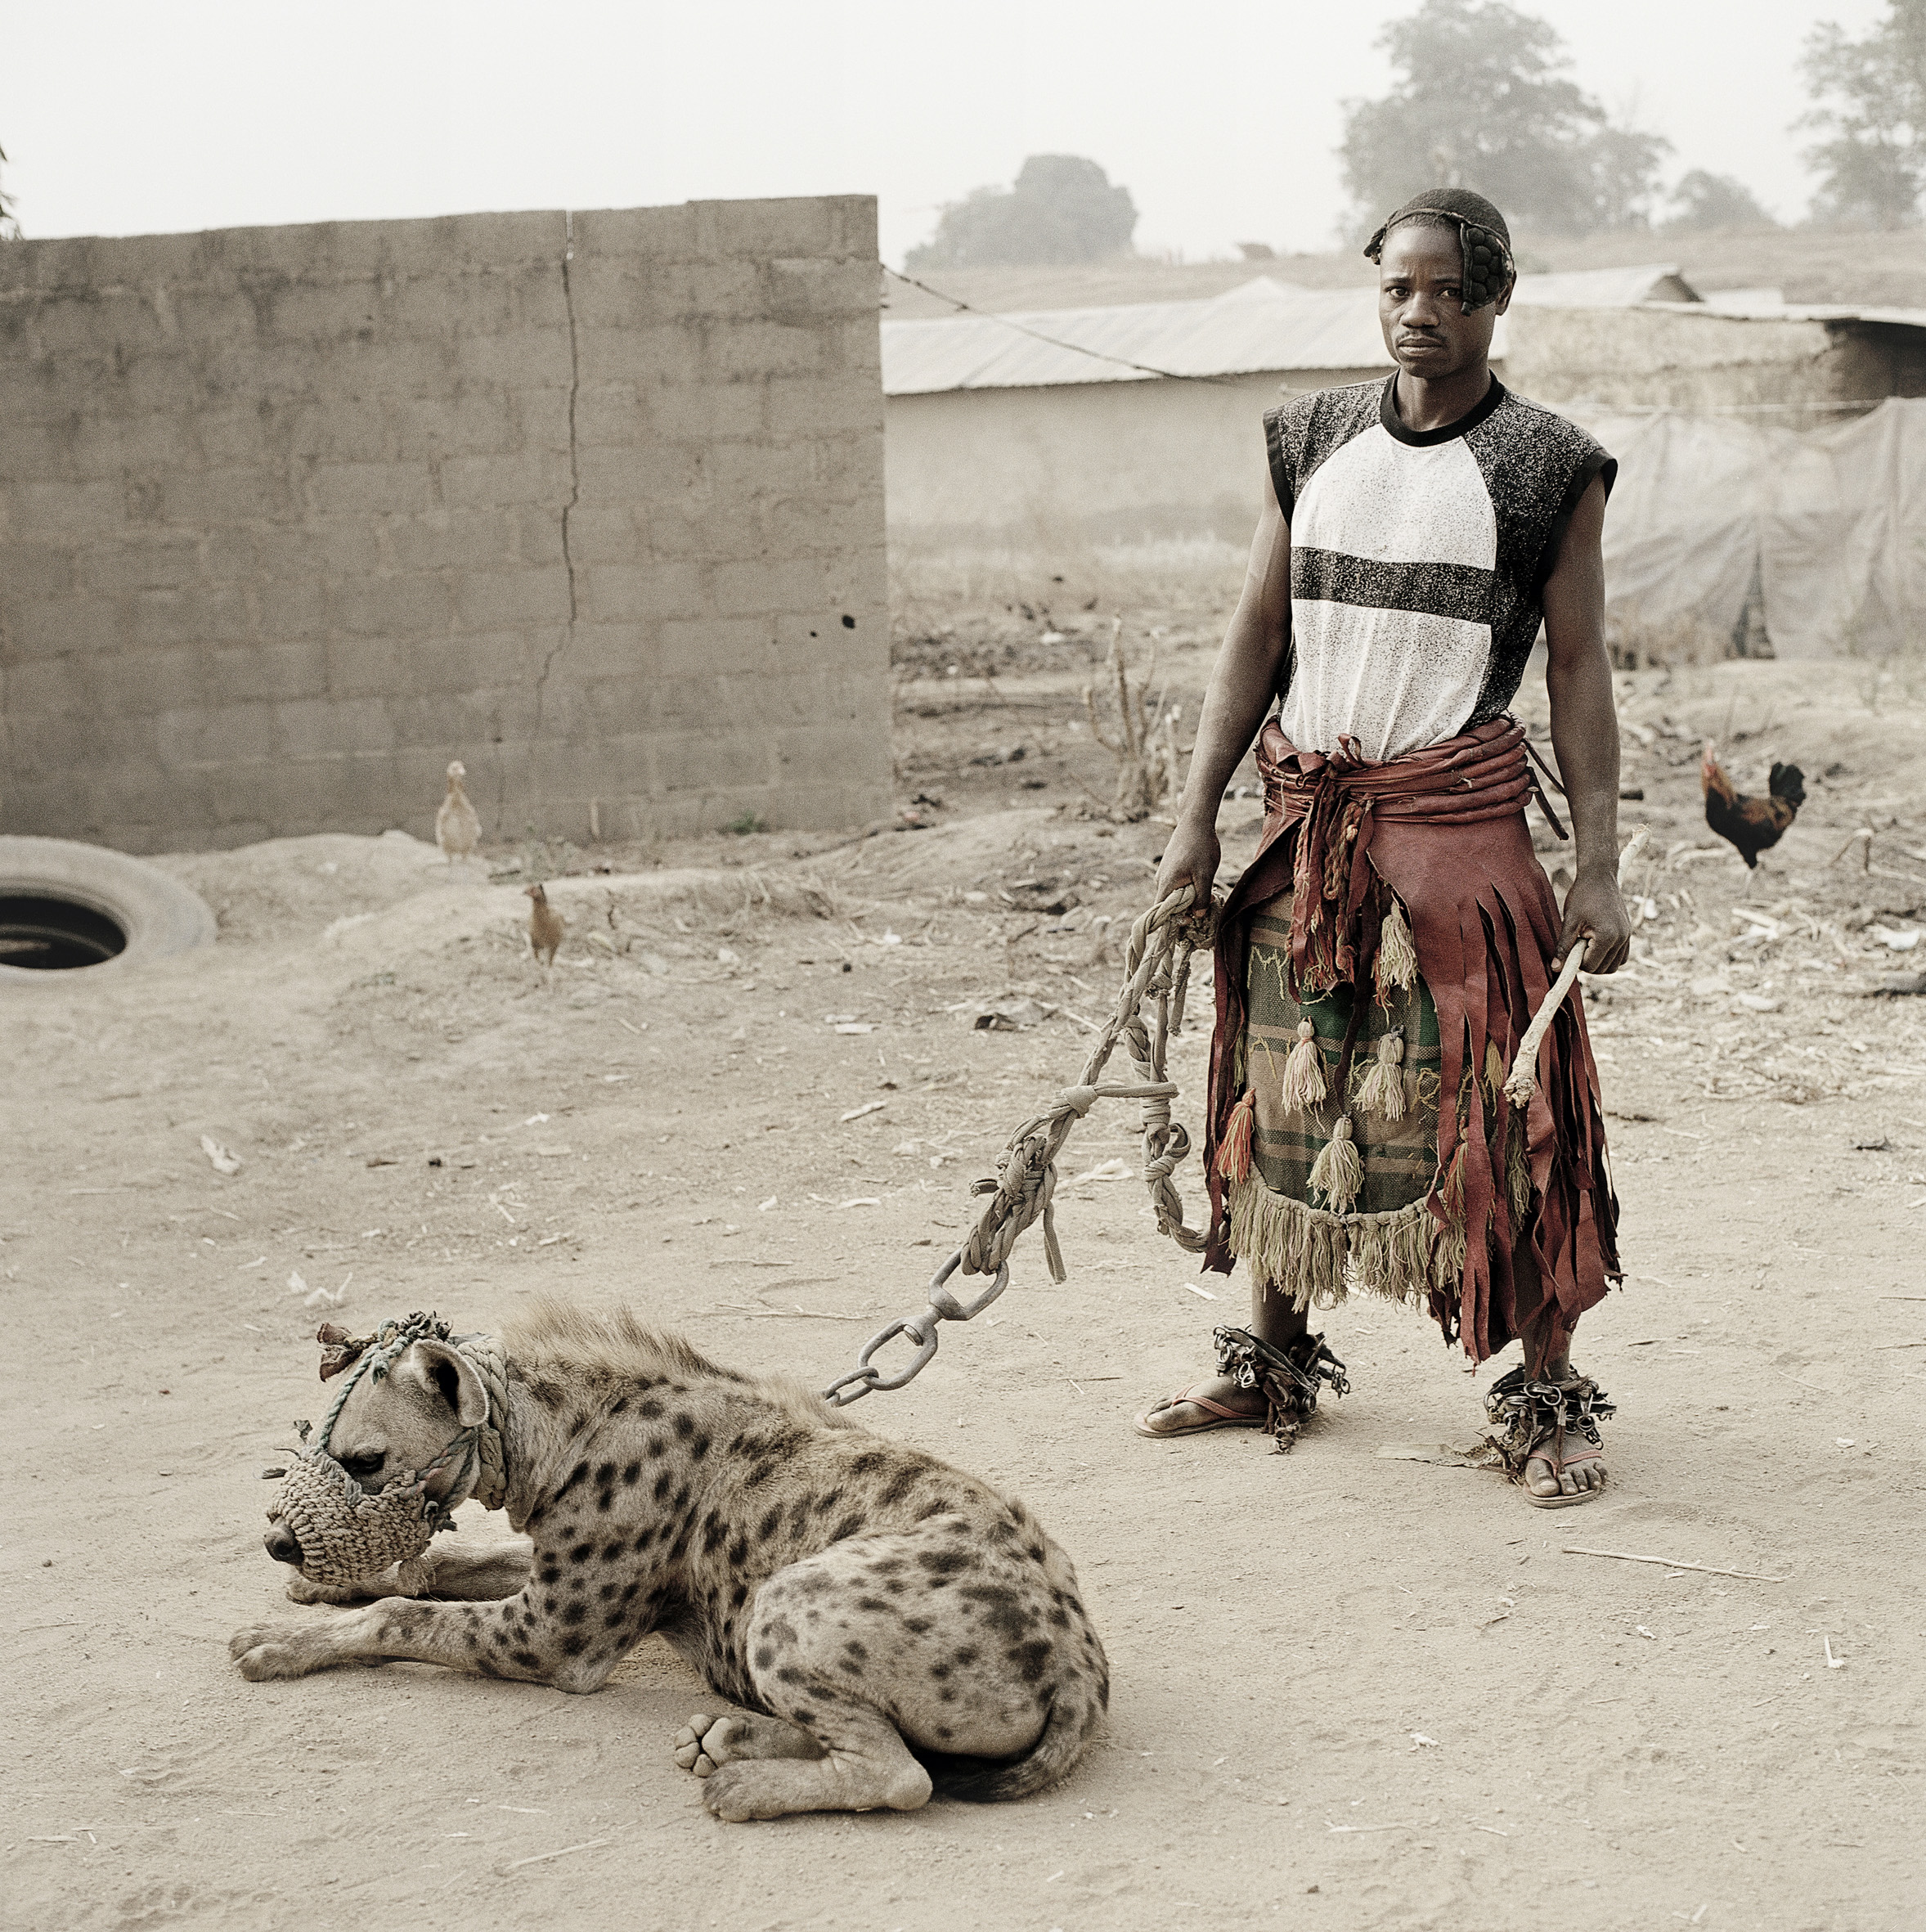 pieter-hugo-hyena-men-06